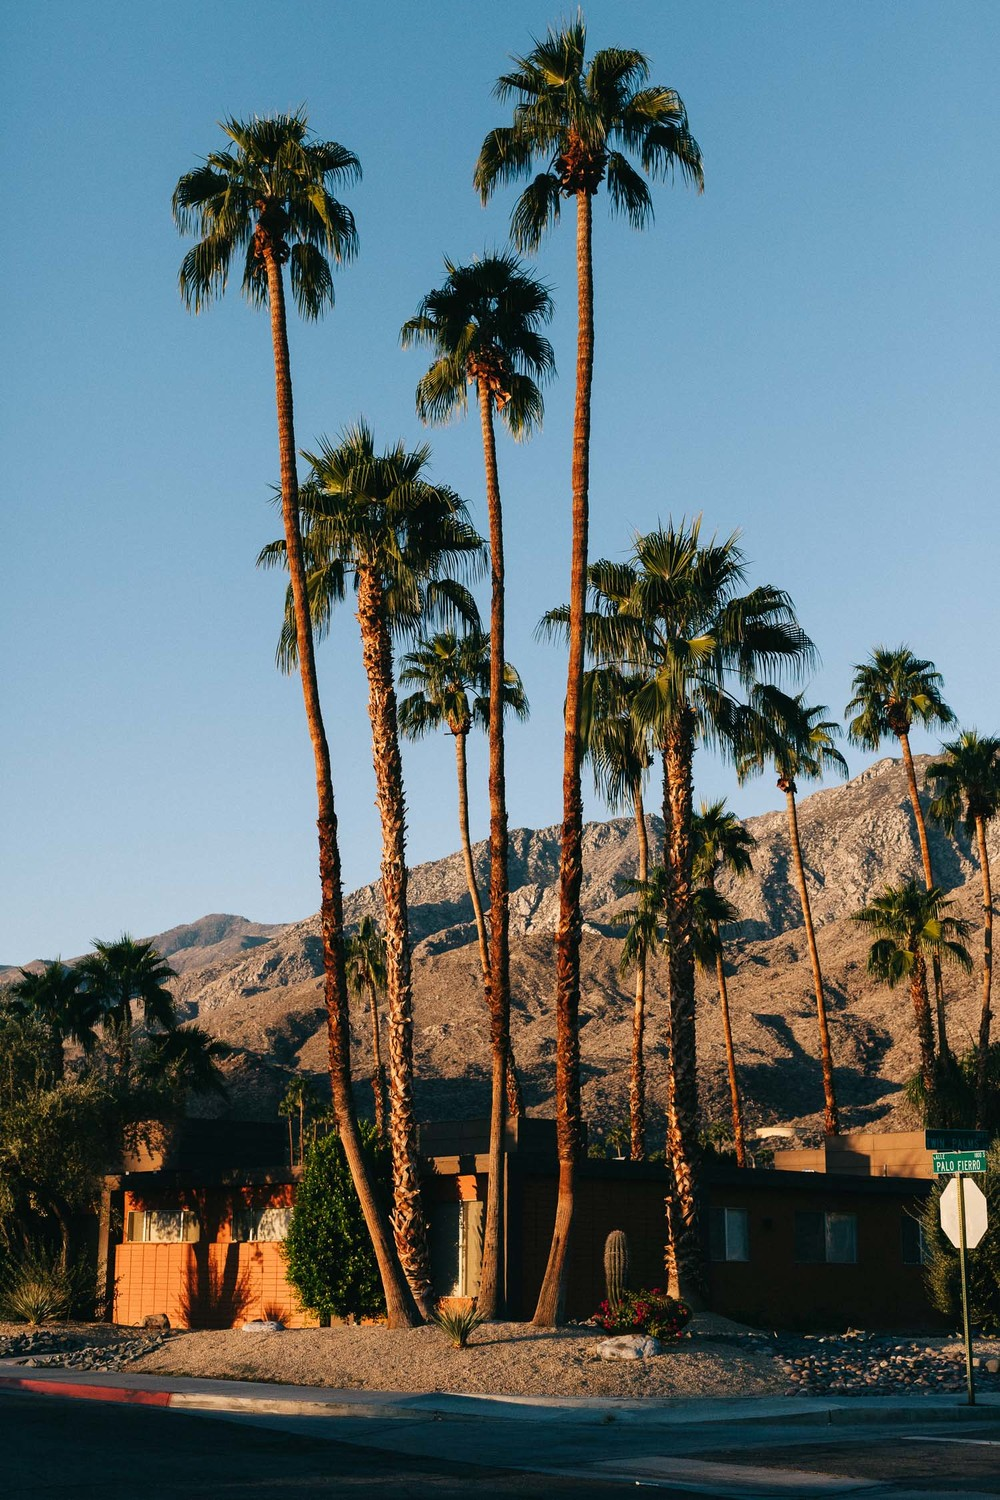 Southern-California-LA-Palm-Springs-travel-photography-by-On-a-hazy-morning-Amsterdam-22.jpg